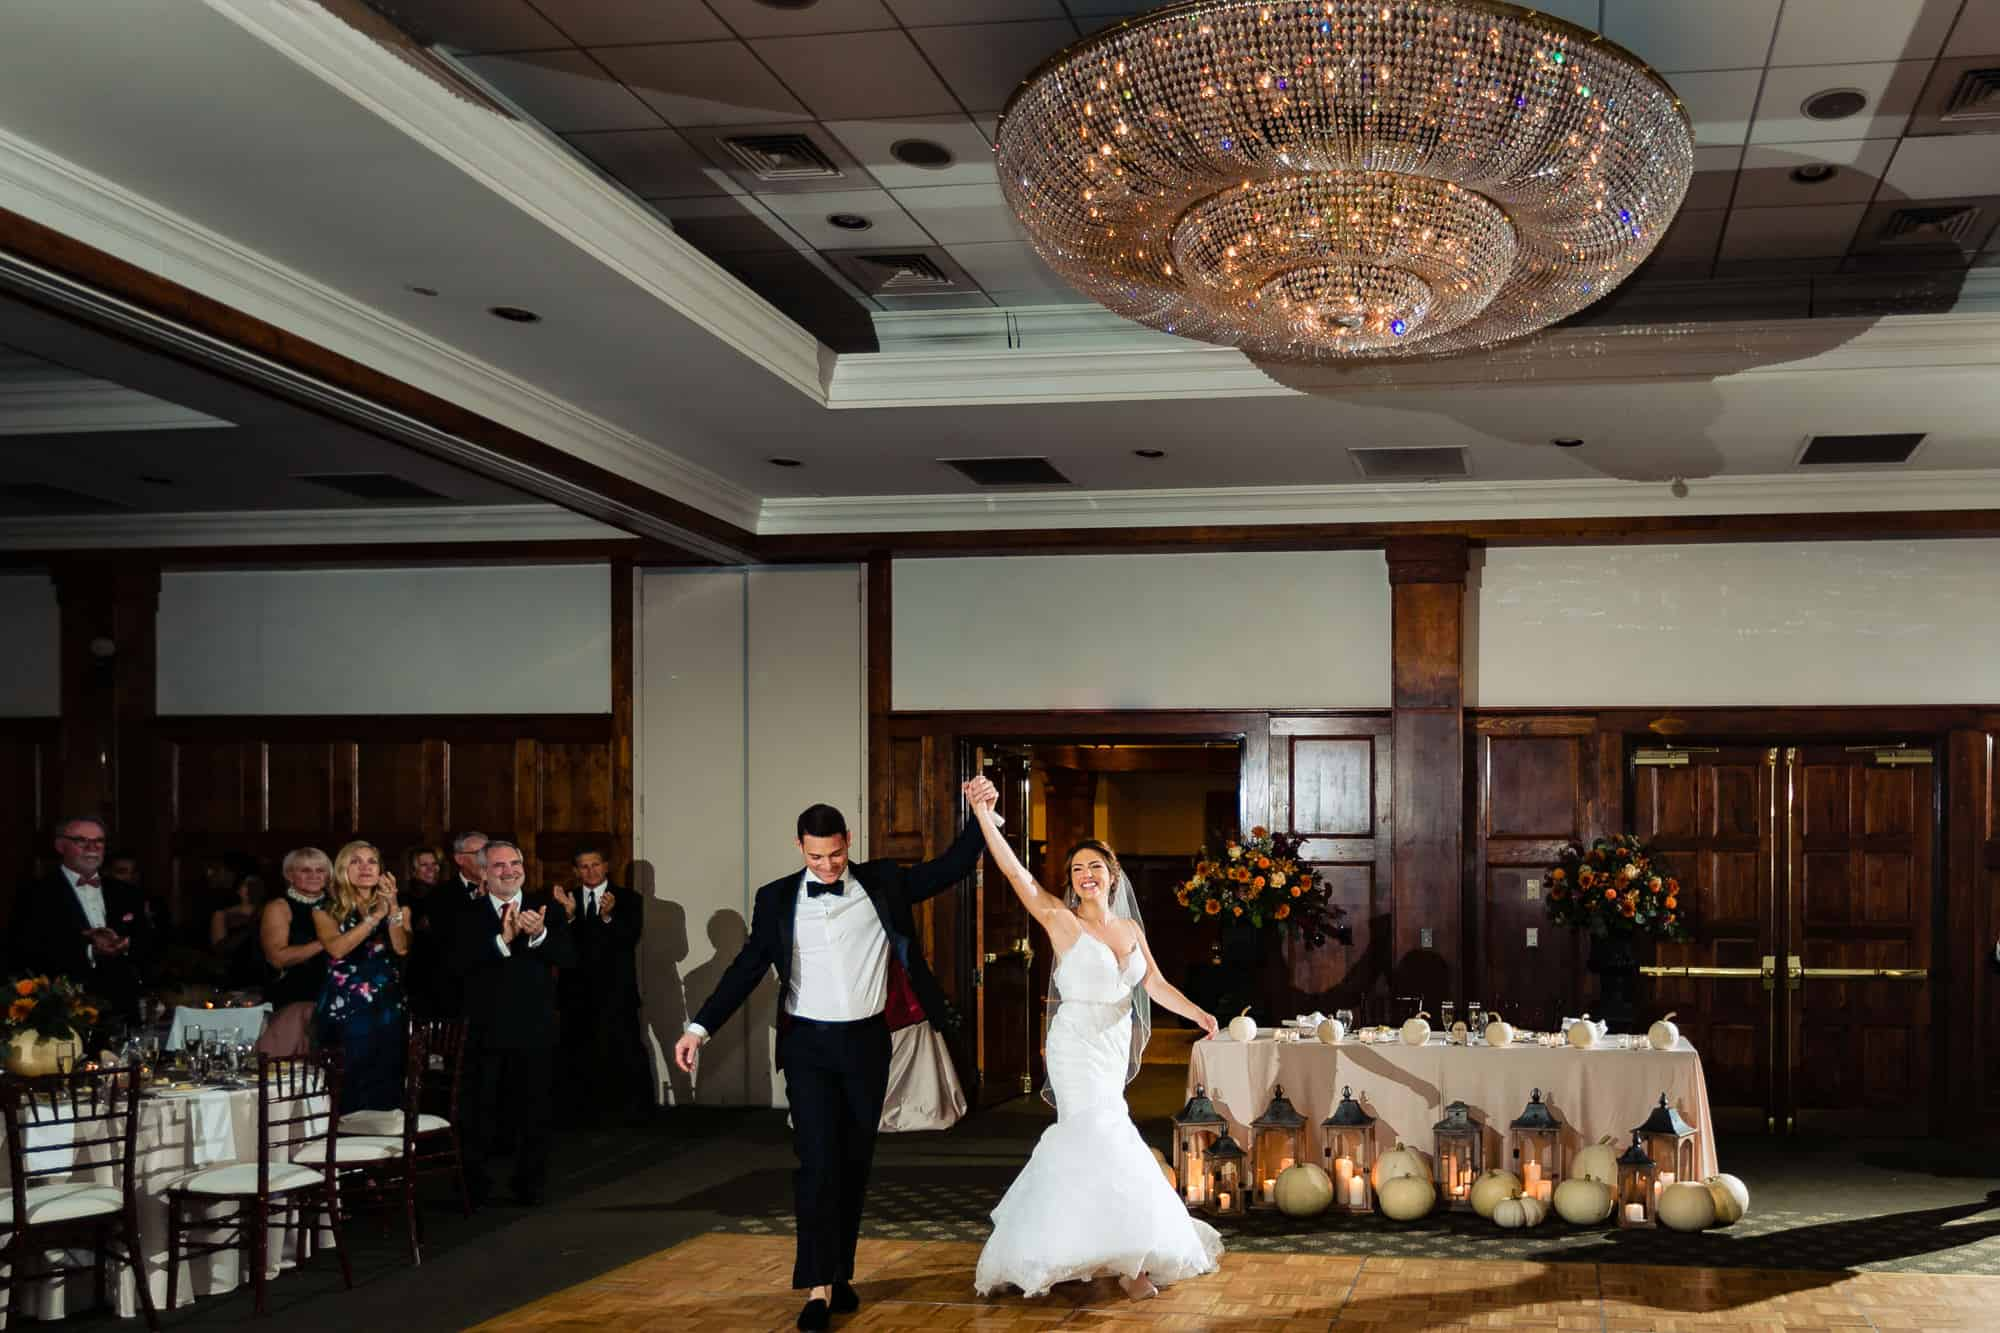 Bride and groom with arms raised as they walk into wedding recpetion